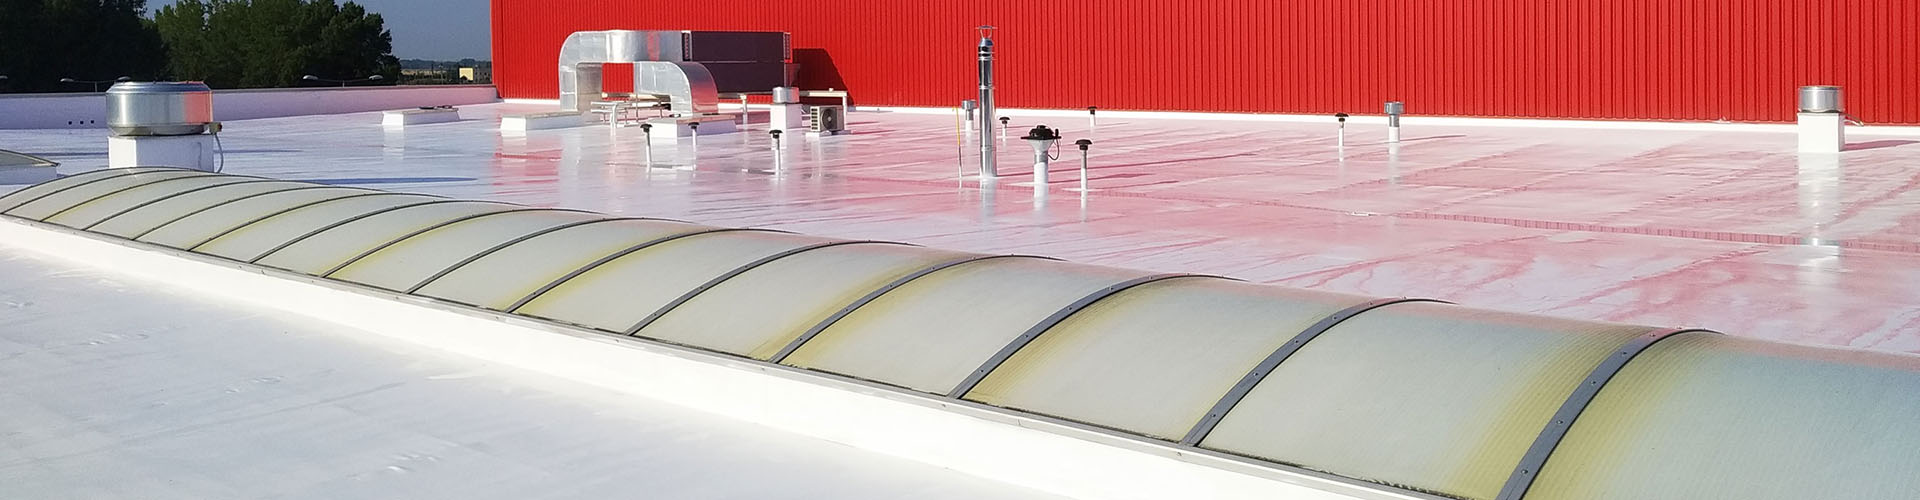 Up to 91.4% sunlight reflection! Cooler roofs thanks to ThermoActive roof coating